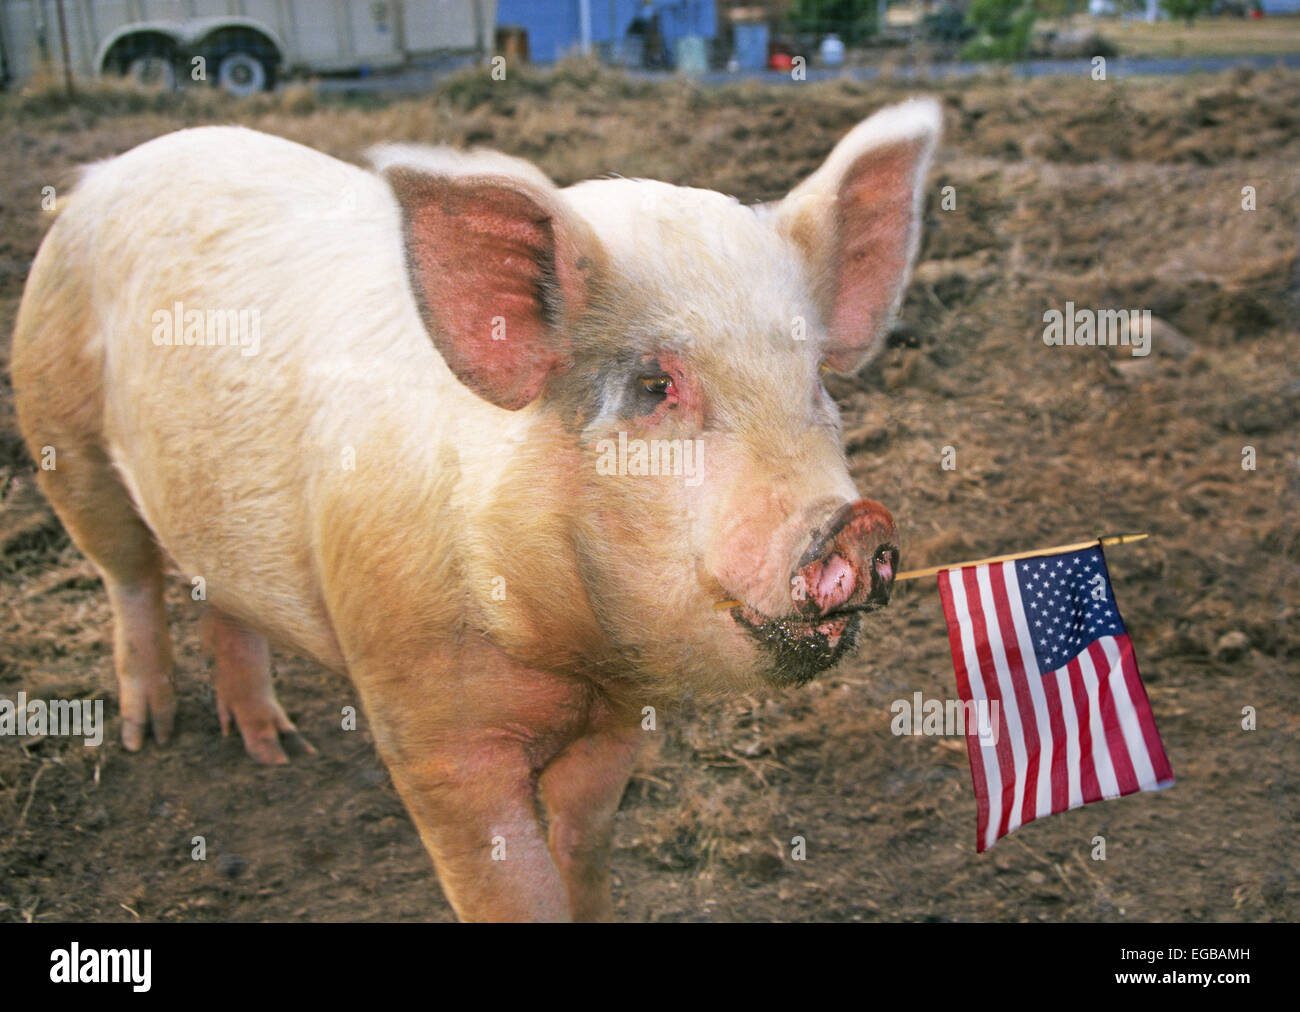 american male pig essay Essay today in this great country of ours, there is an animal that stalks the face of our land an animal that'll stop at very little to obtain it's nightly goal.